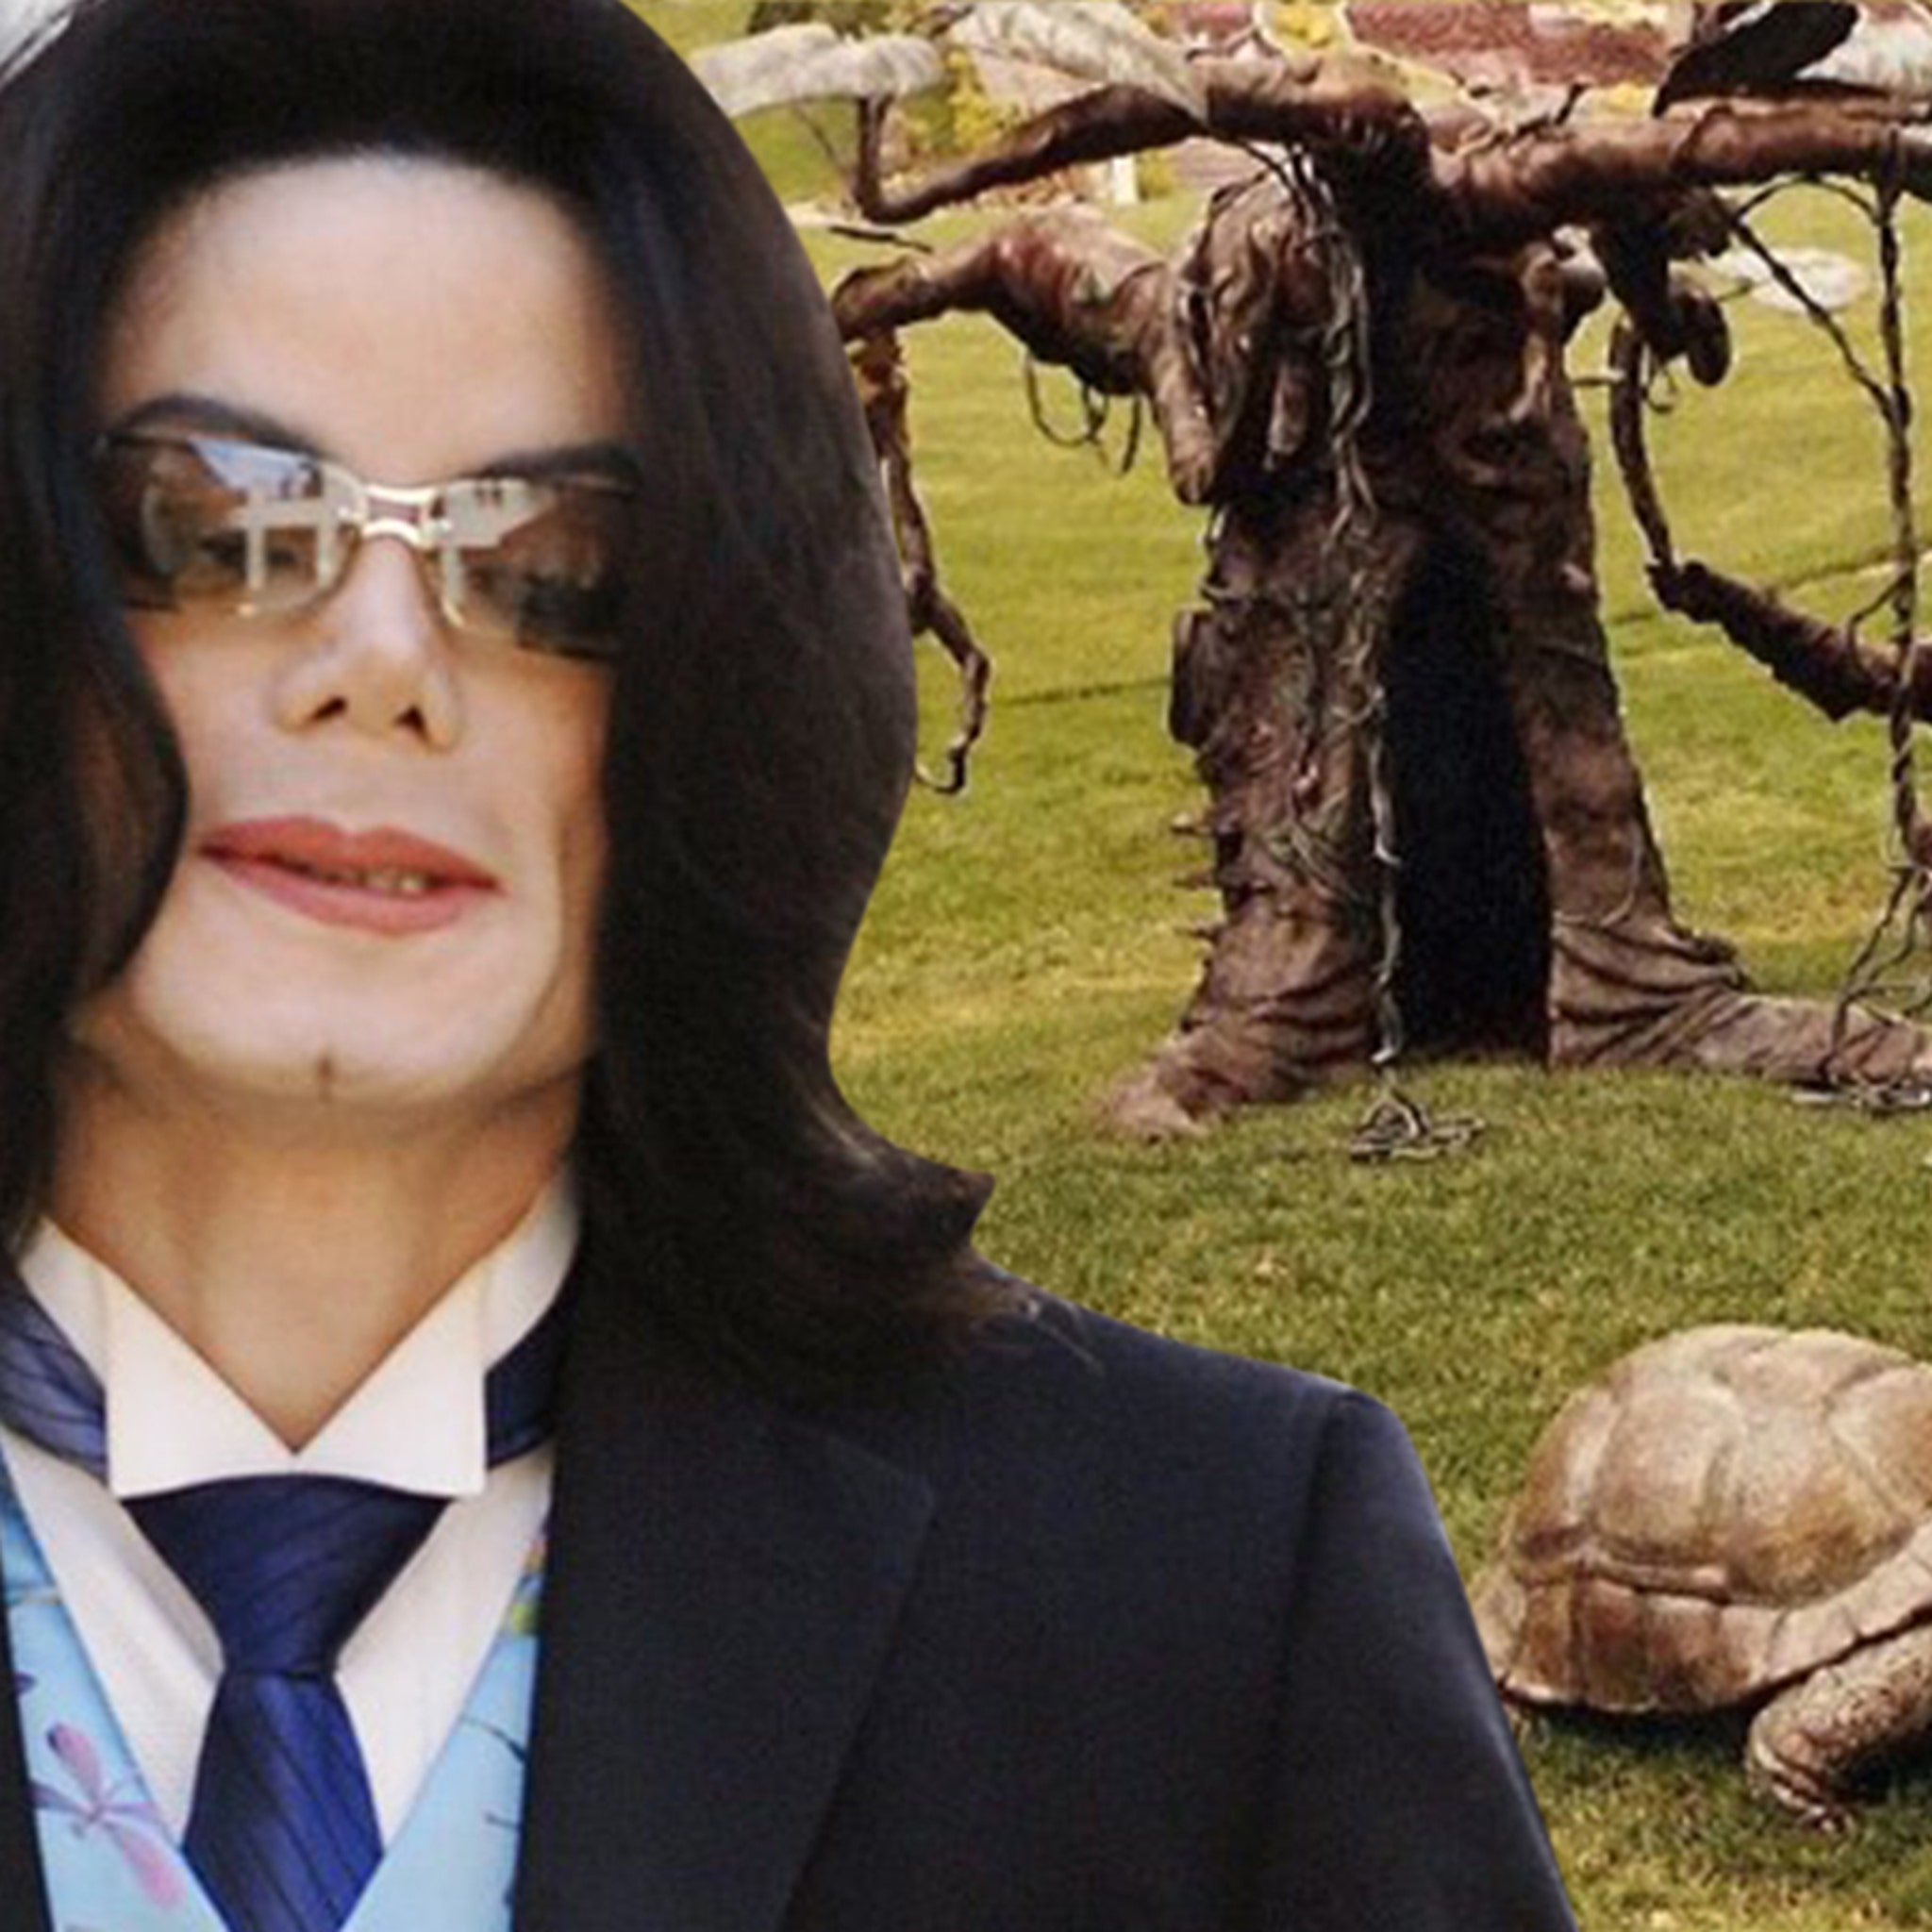 Michael Jackson's Neverland Ranch Jungle Gym Sculptures For Sale